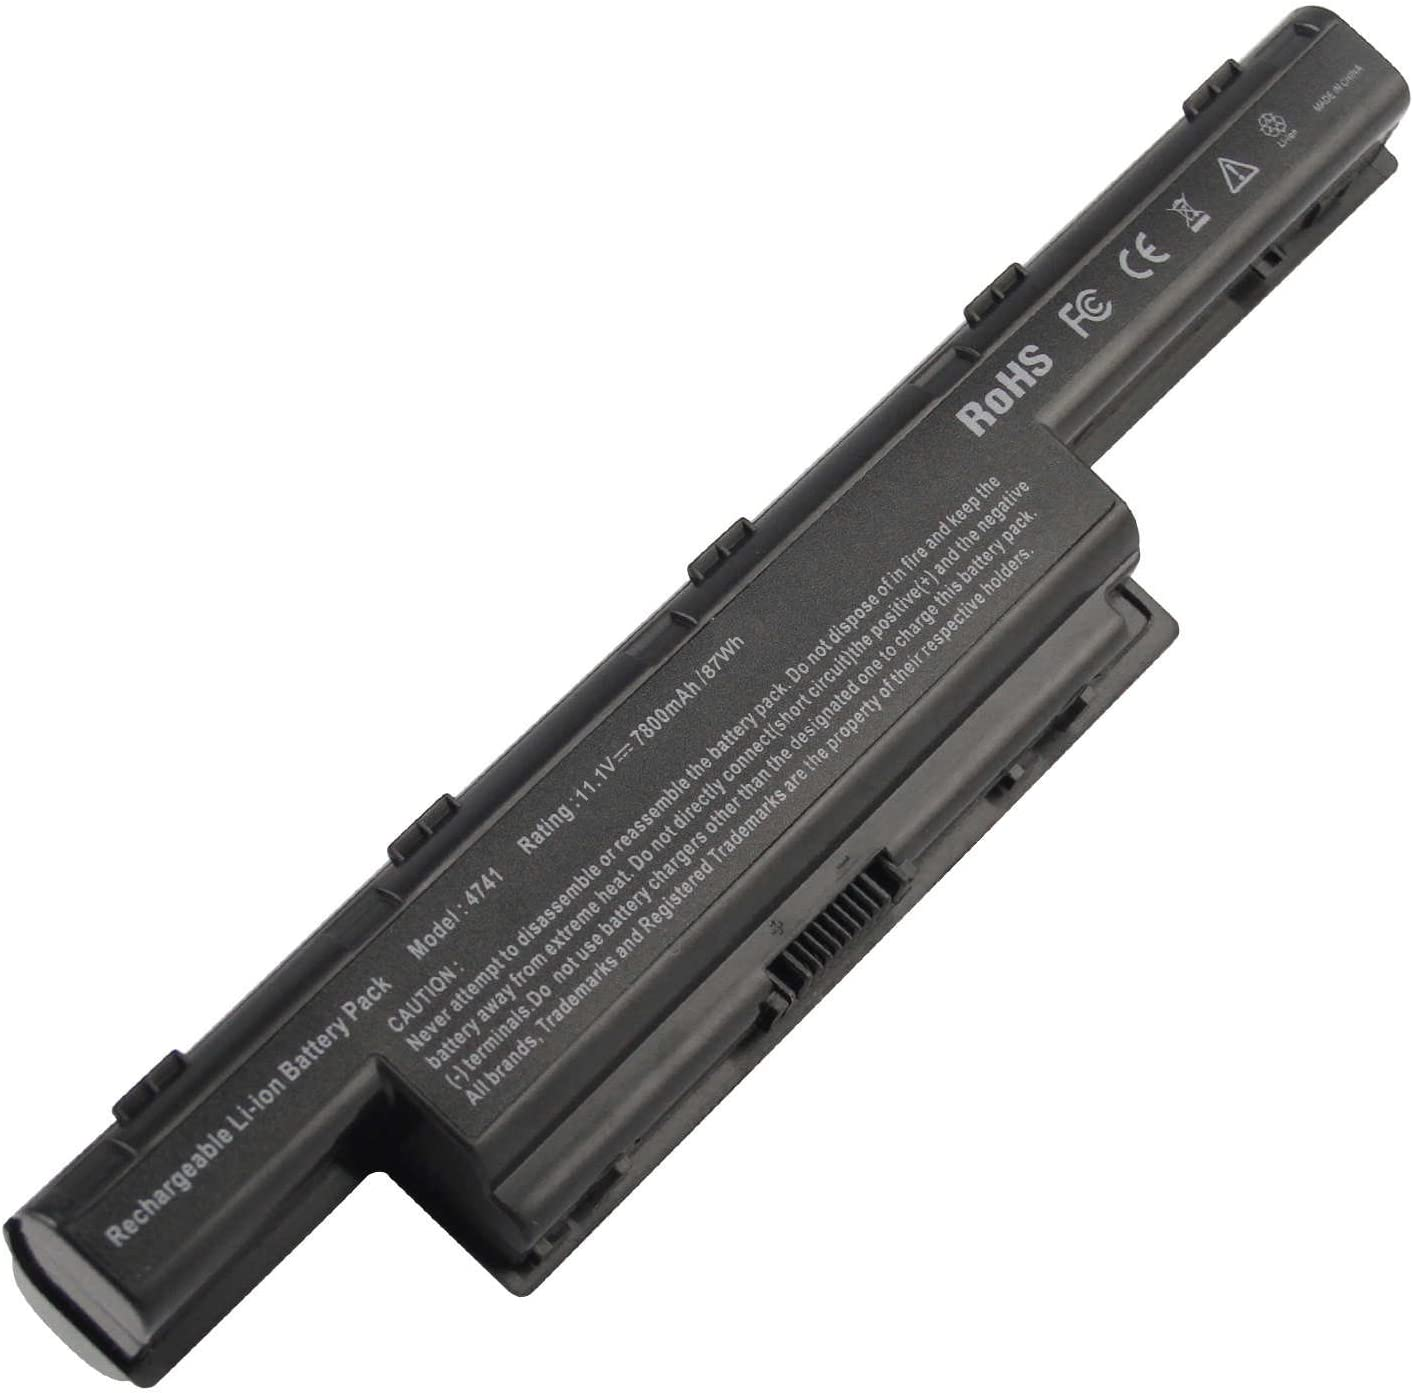 Fancy Buying 7800mAH 9-Cell Laptop Battery for Acer AS10D31 AS10D51 Acer Aspire 5253 5251 5336 5349 5551 5552 5560 5733 5733Z Acer TravelMate 5740 5735 5735Z 5740G Gateway NV55C NV50A NV53A NV59C